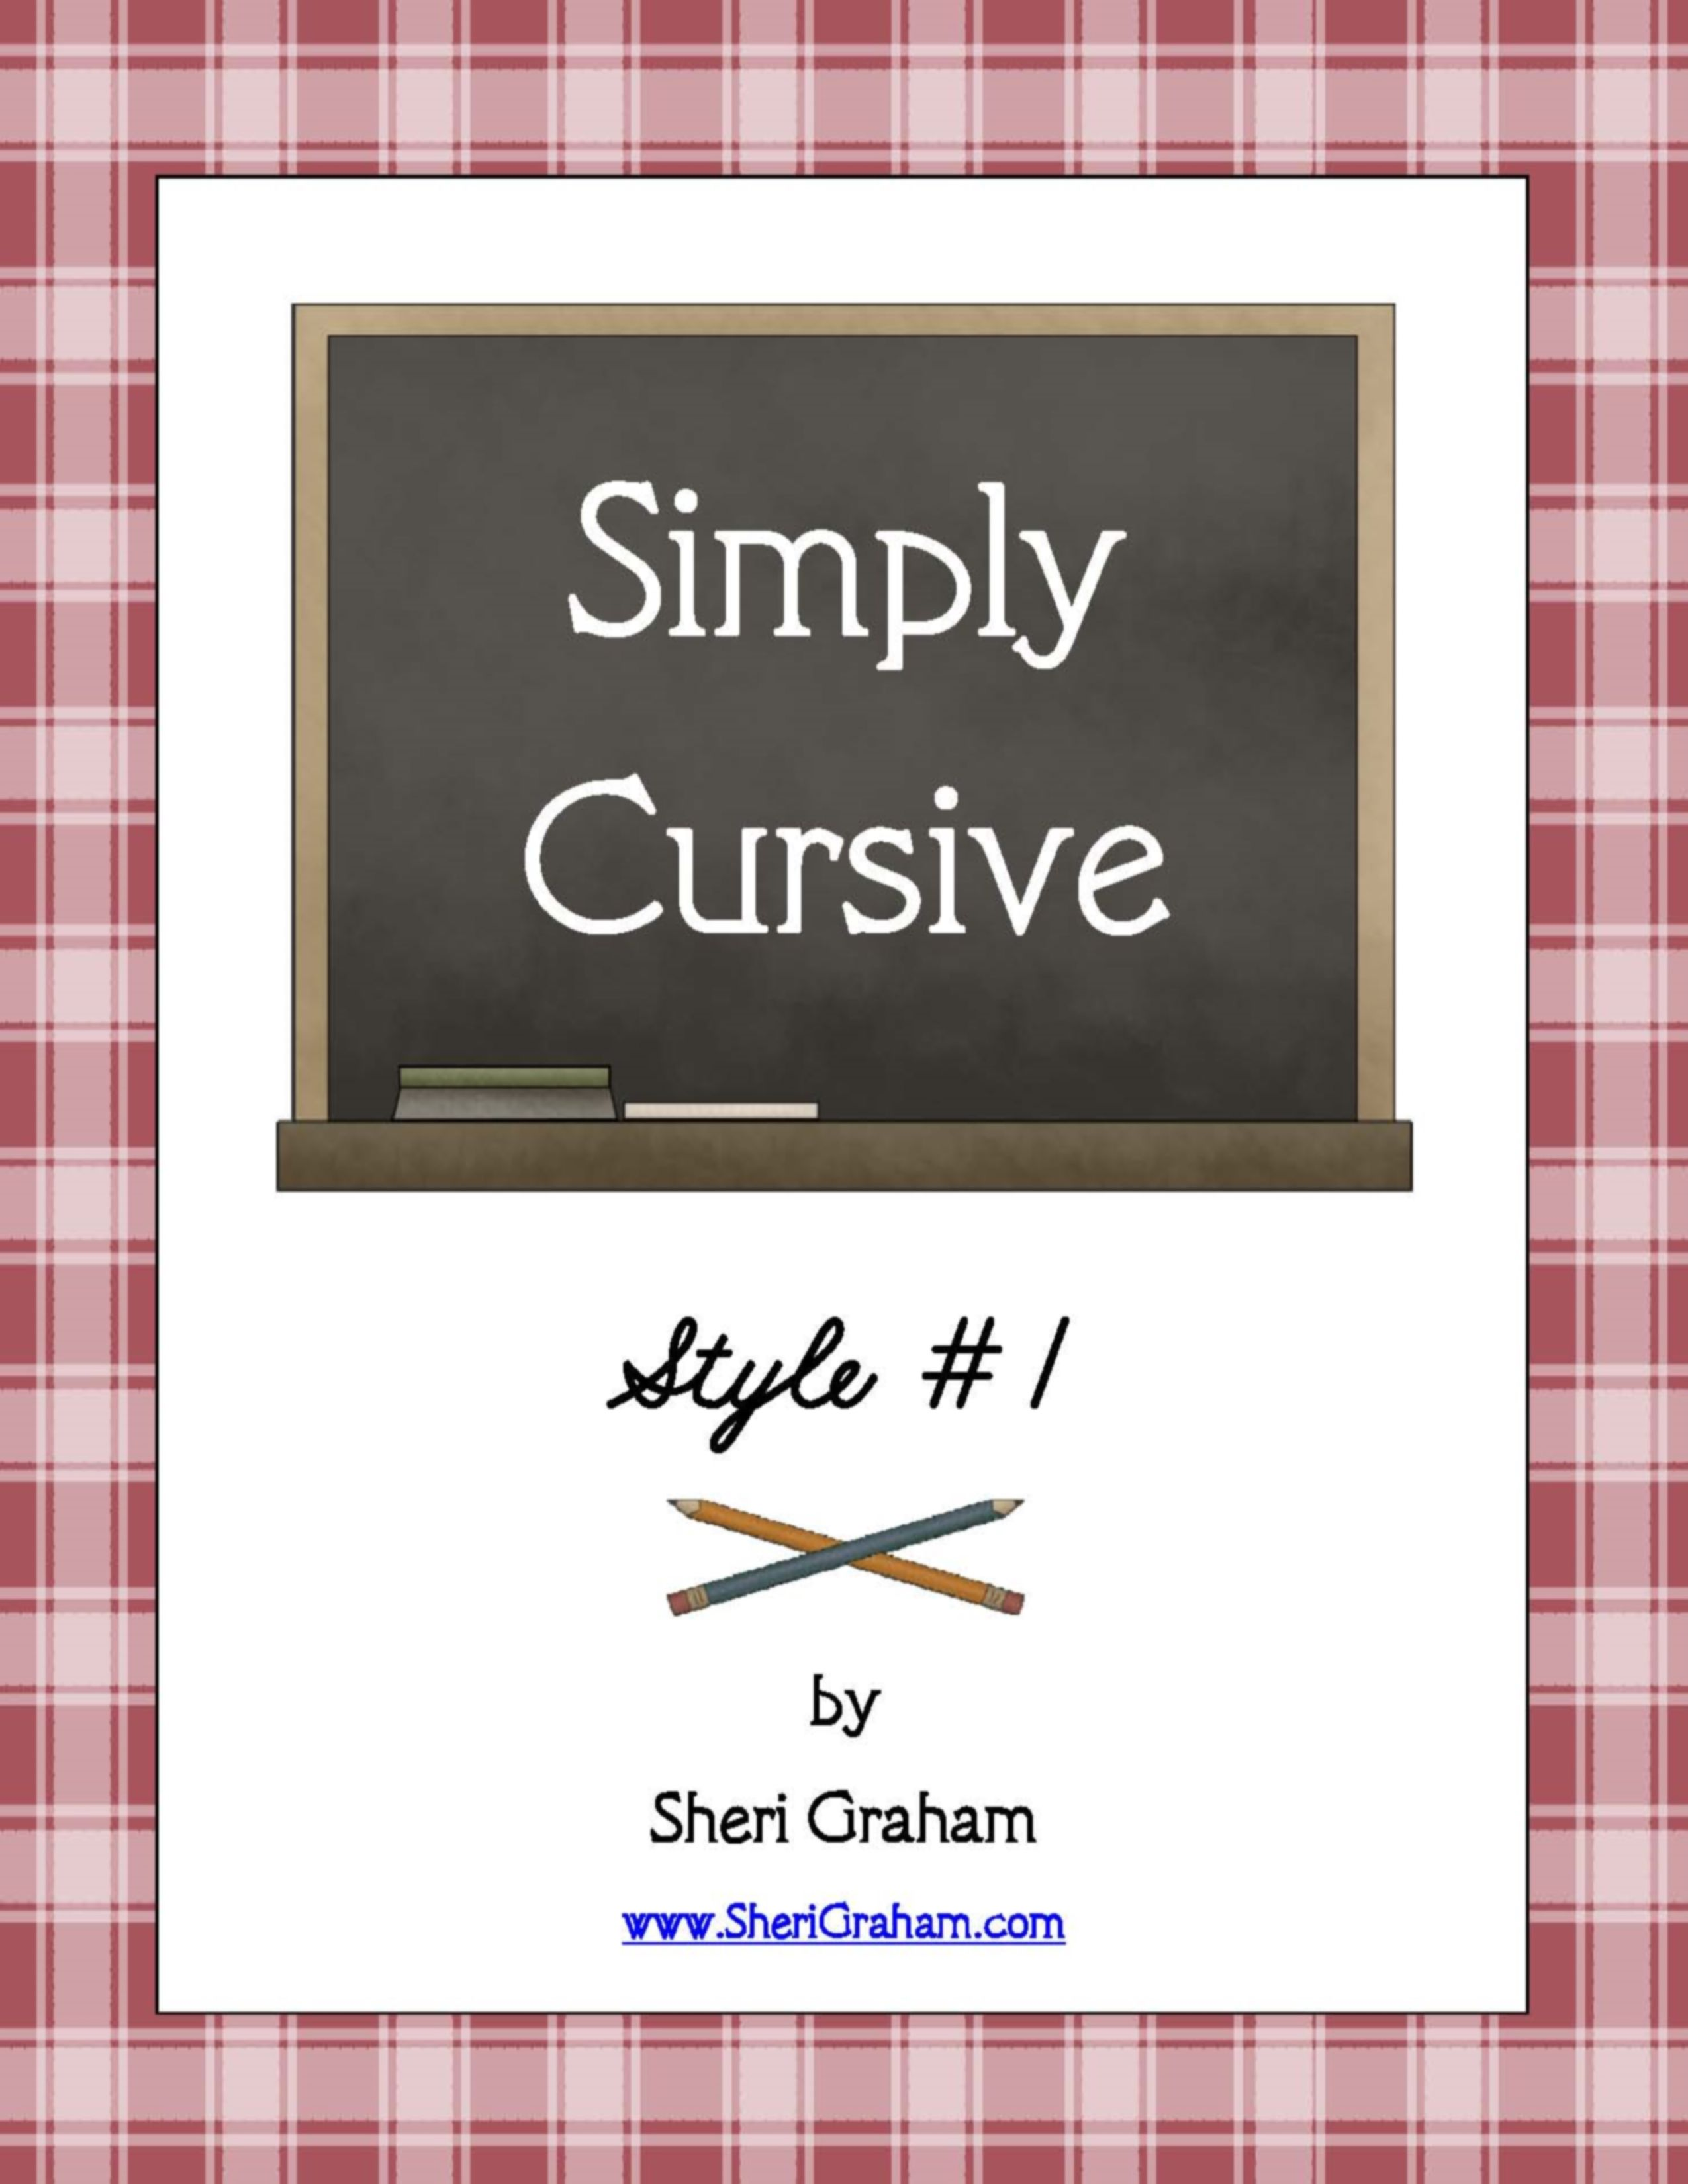 Simply cursive now available in softcover cursive and homeschool simply cursive is now available in softcover format on amazon this is a wonderful book fandeluxe Images